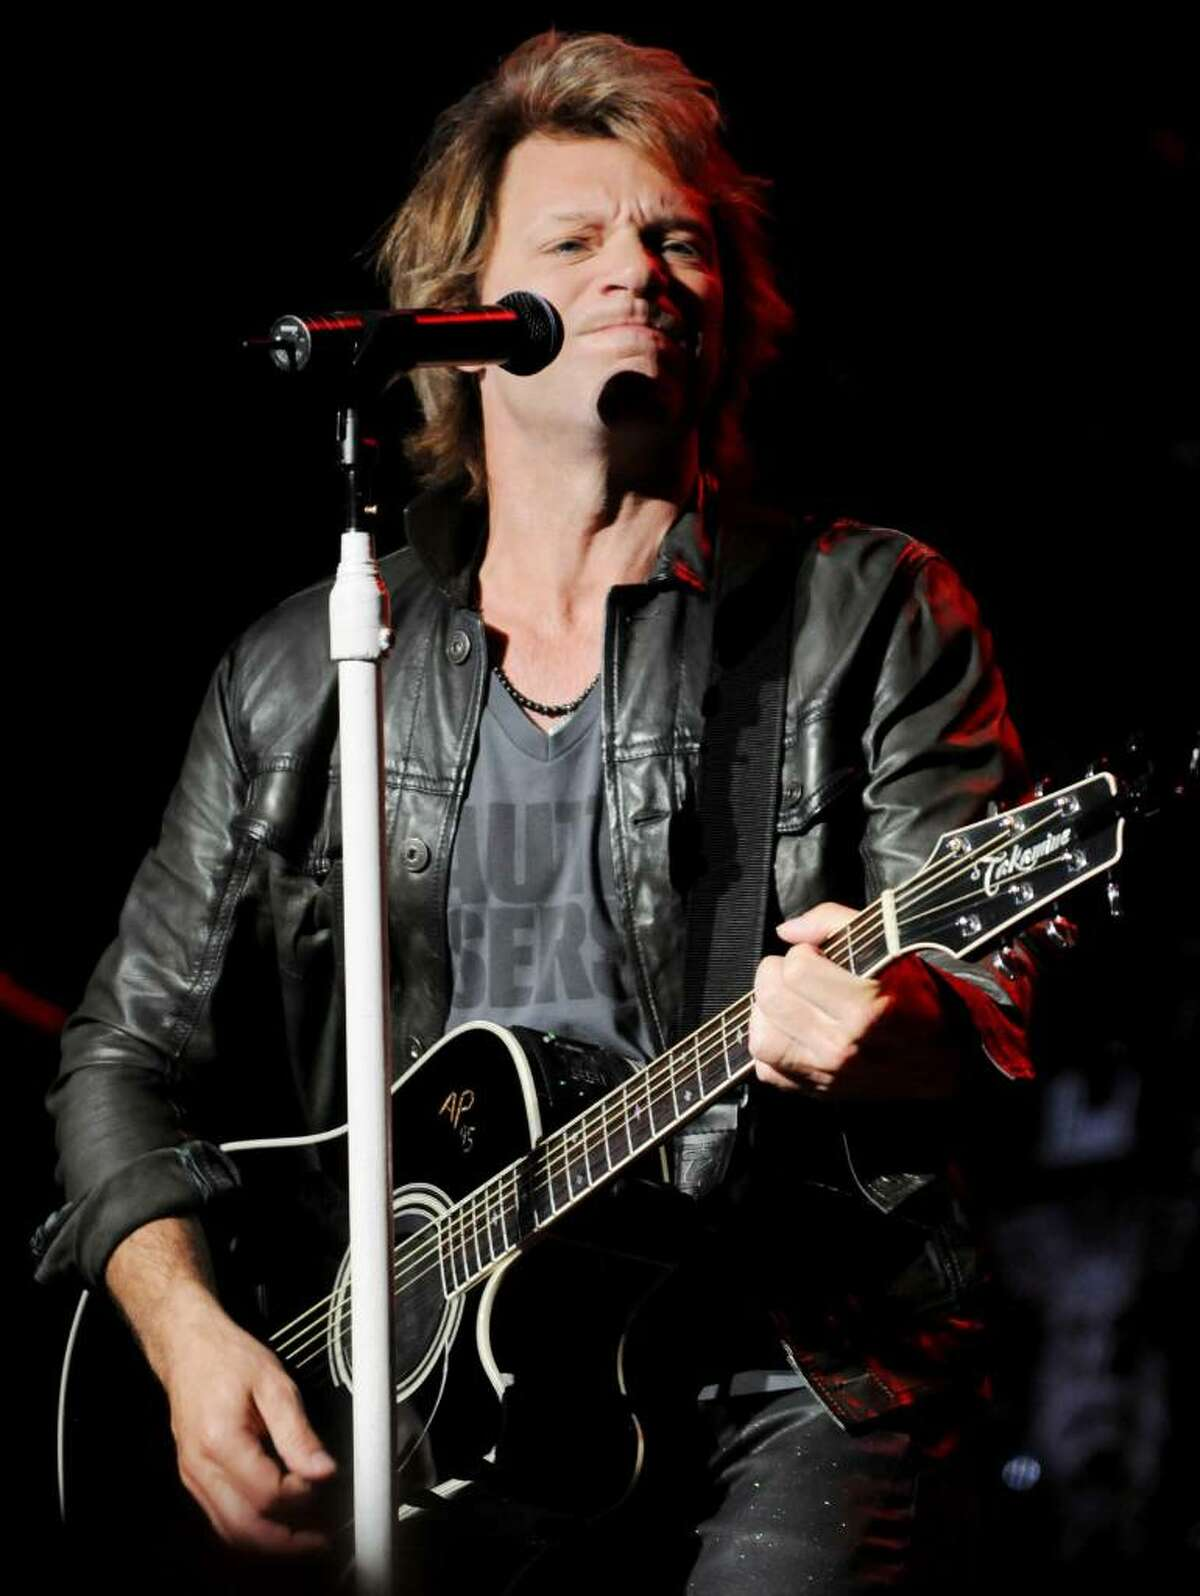 Headliner Jon Bon Jovi performs on stage at SPAC, on Sunday, July 11, 2010, Saratoga Springs, NY, before a sold out amphitheater, and huge lawn crowd.